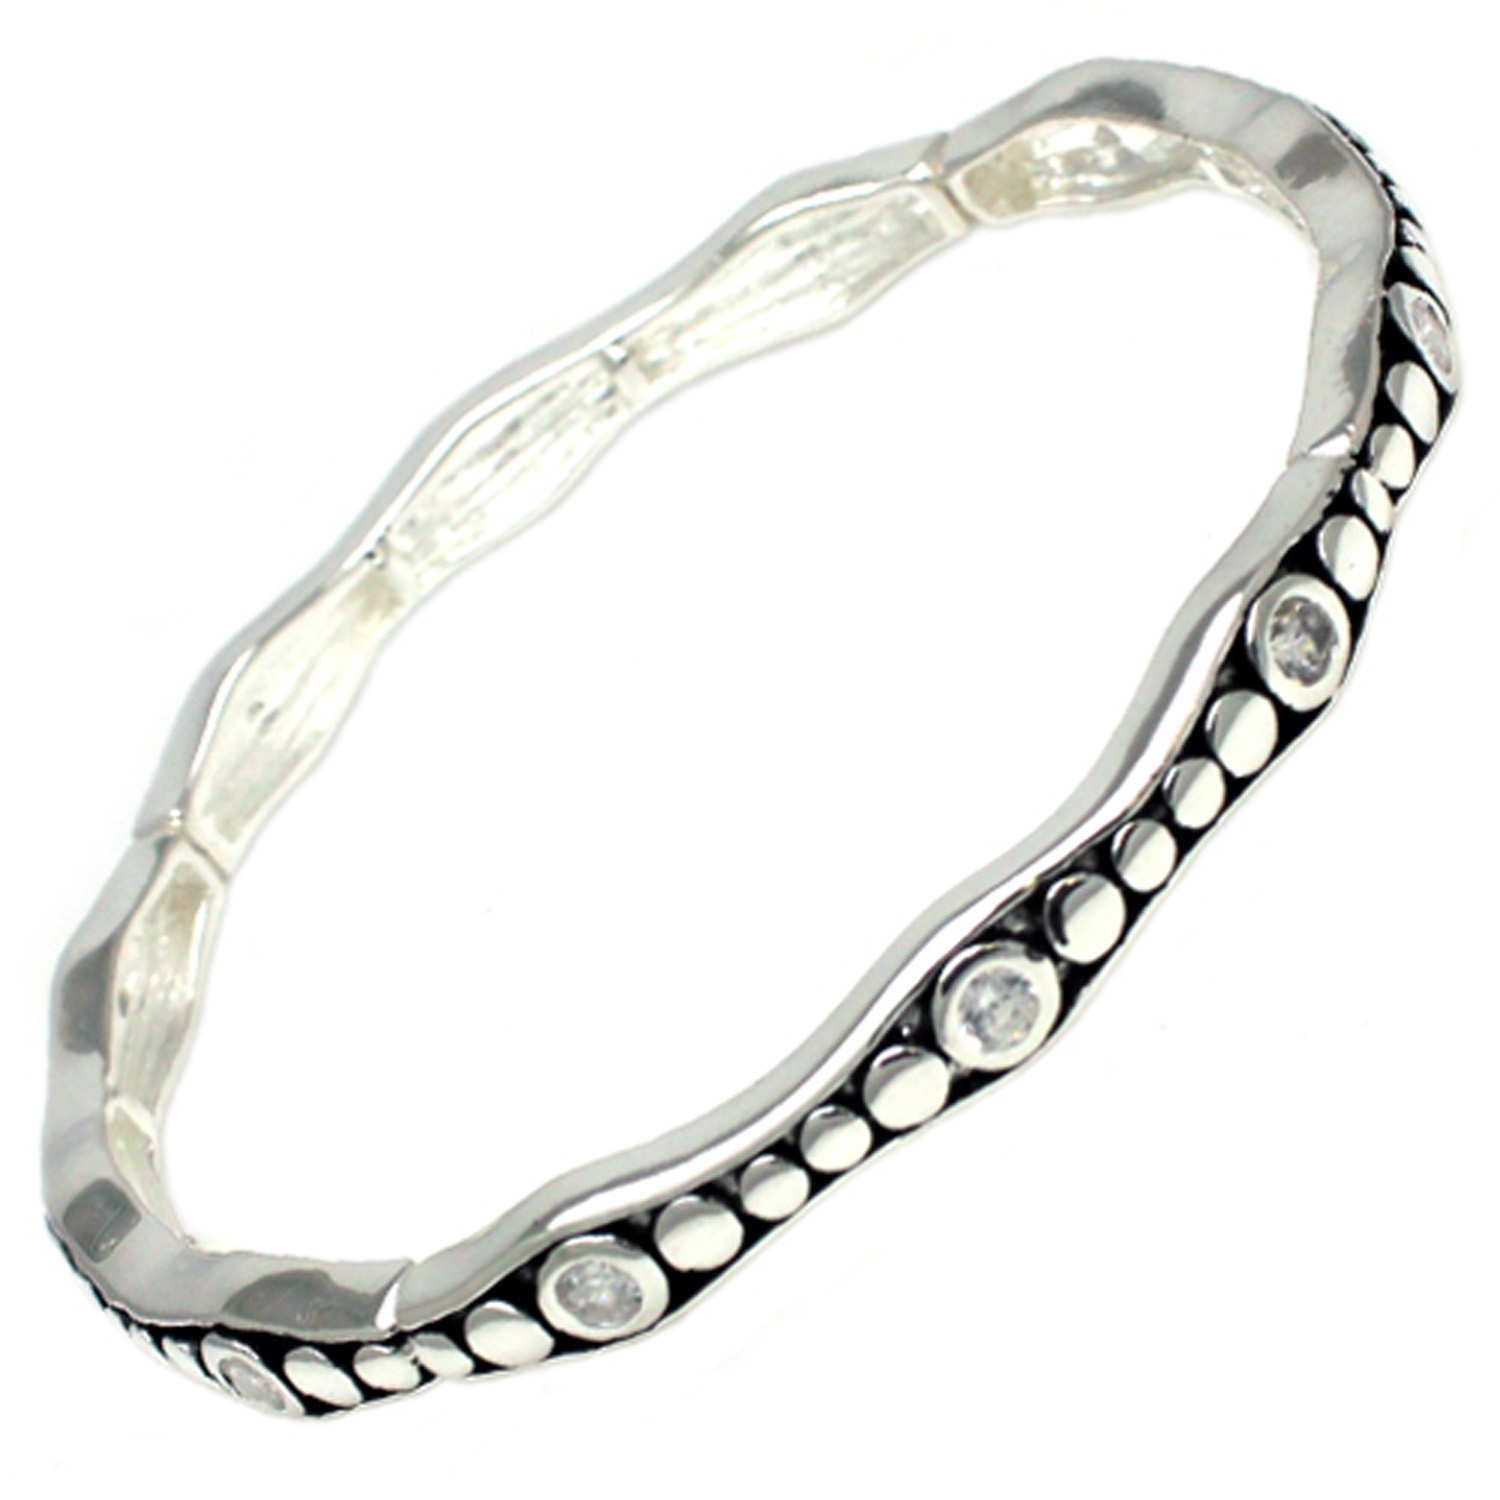 Antique Silver Plated Brass CZ BANGLE Bracelet